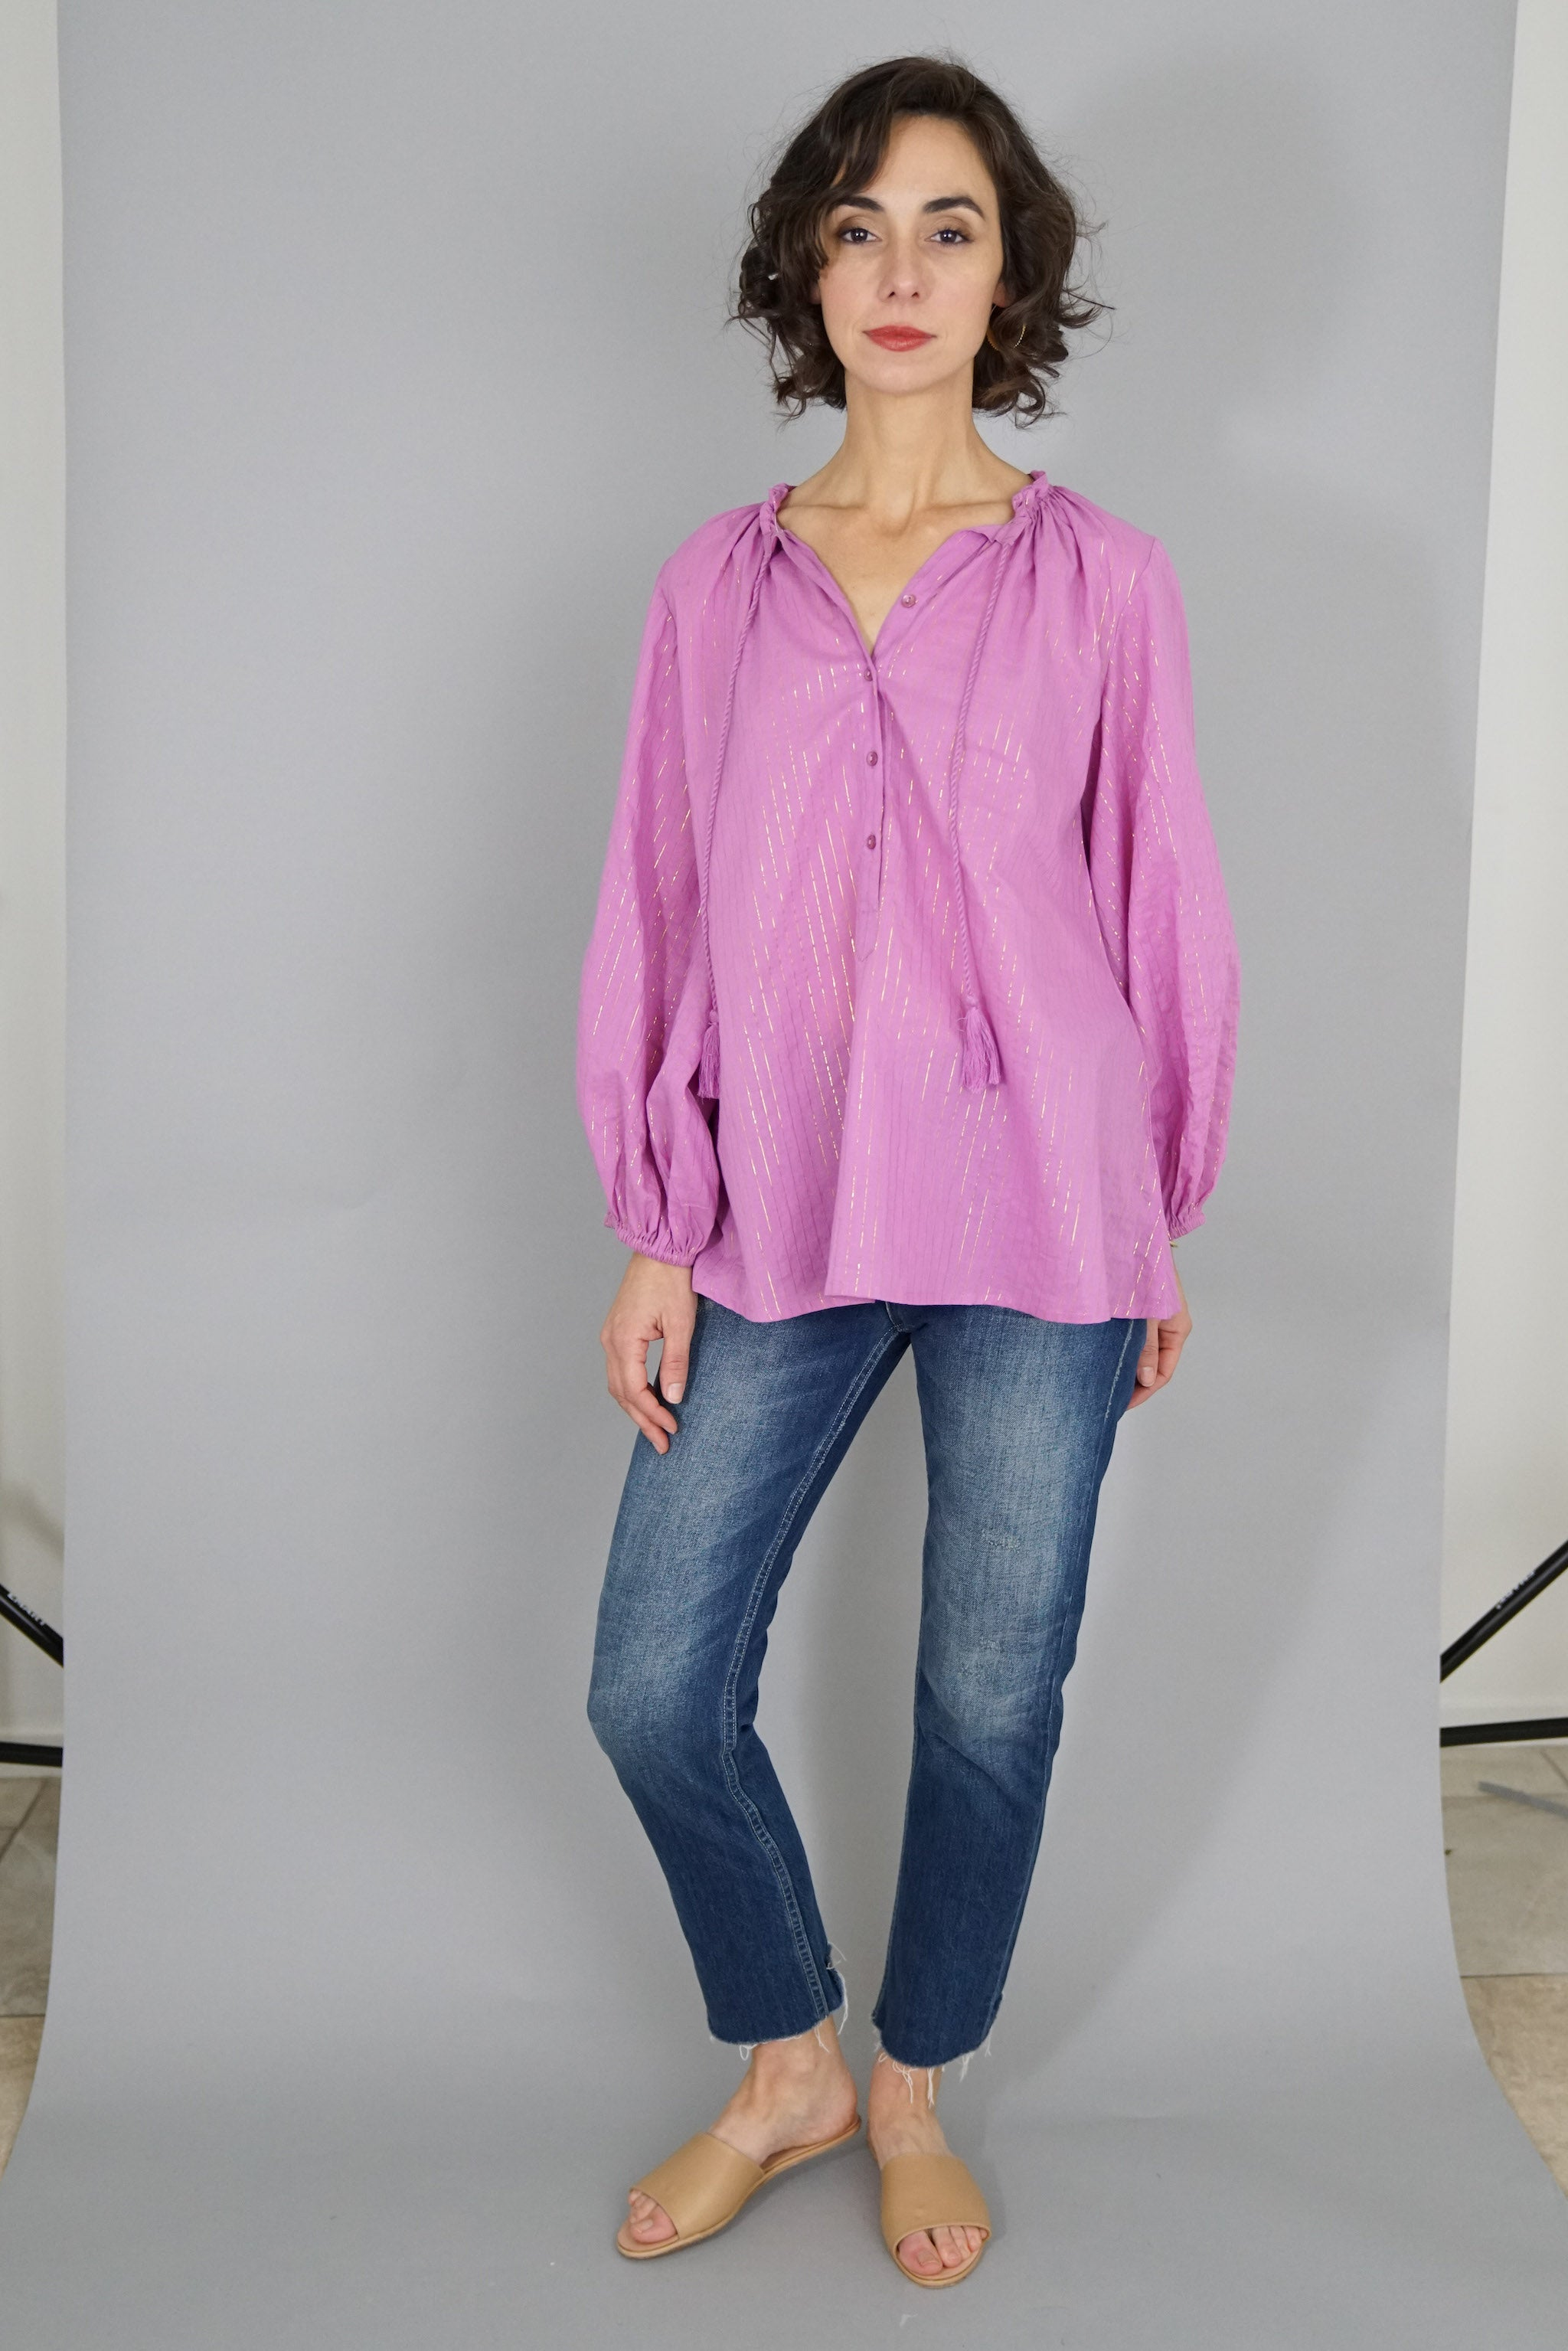 Bardot Top - Pink Lurex